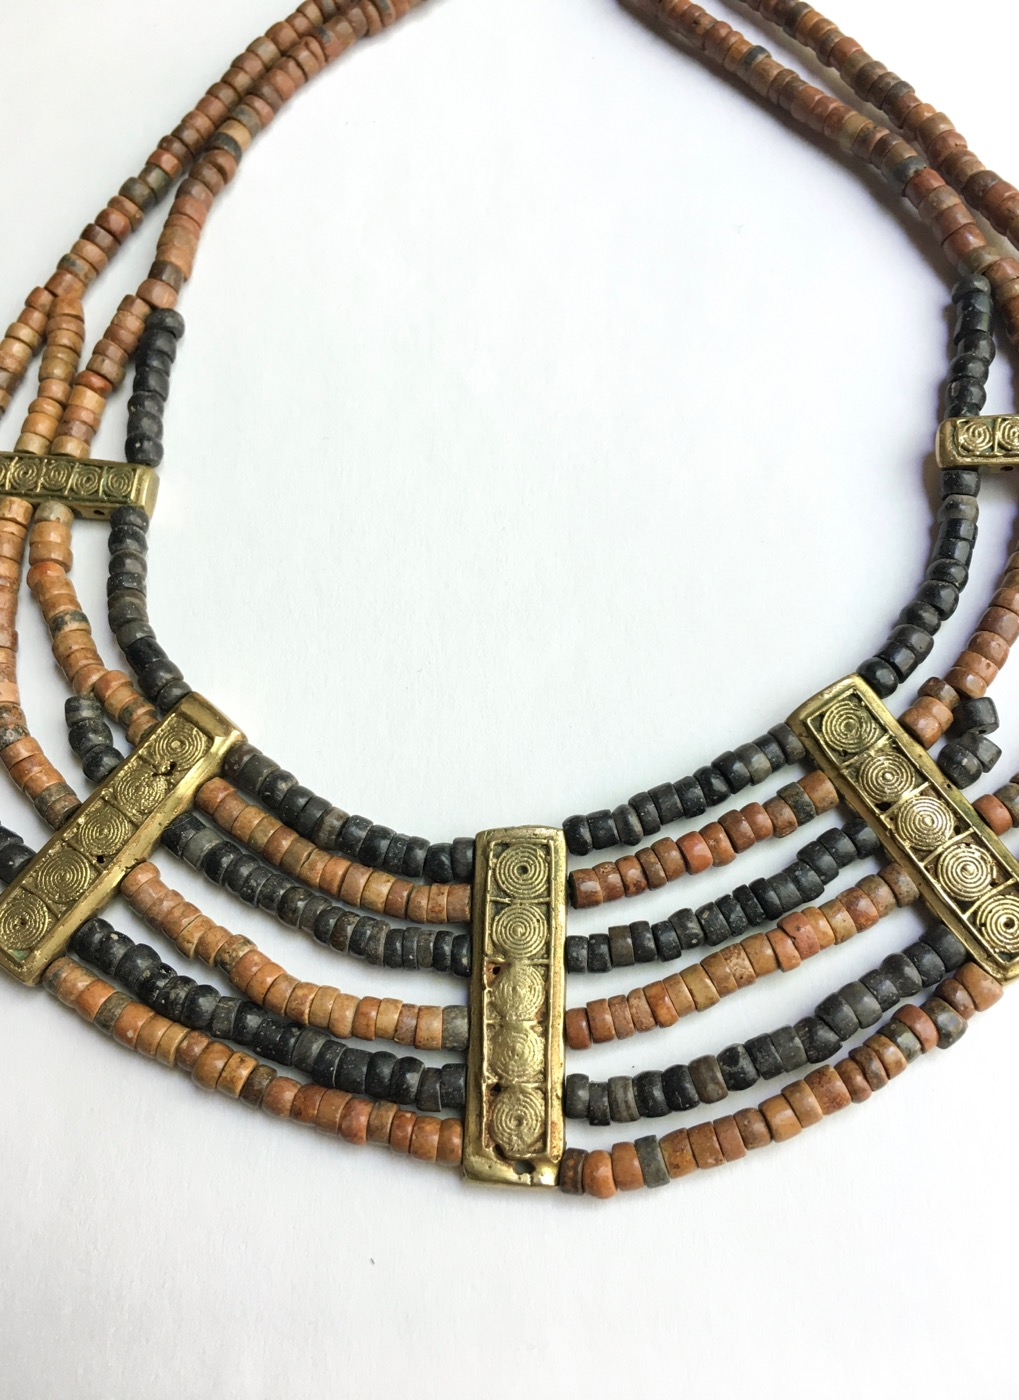 70s-african-beaded-necklace-bracelet-set-with-large-brass-beads